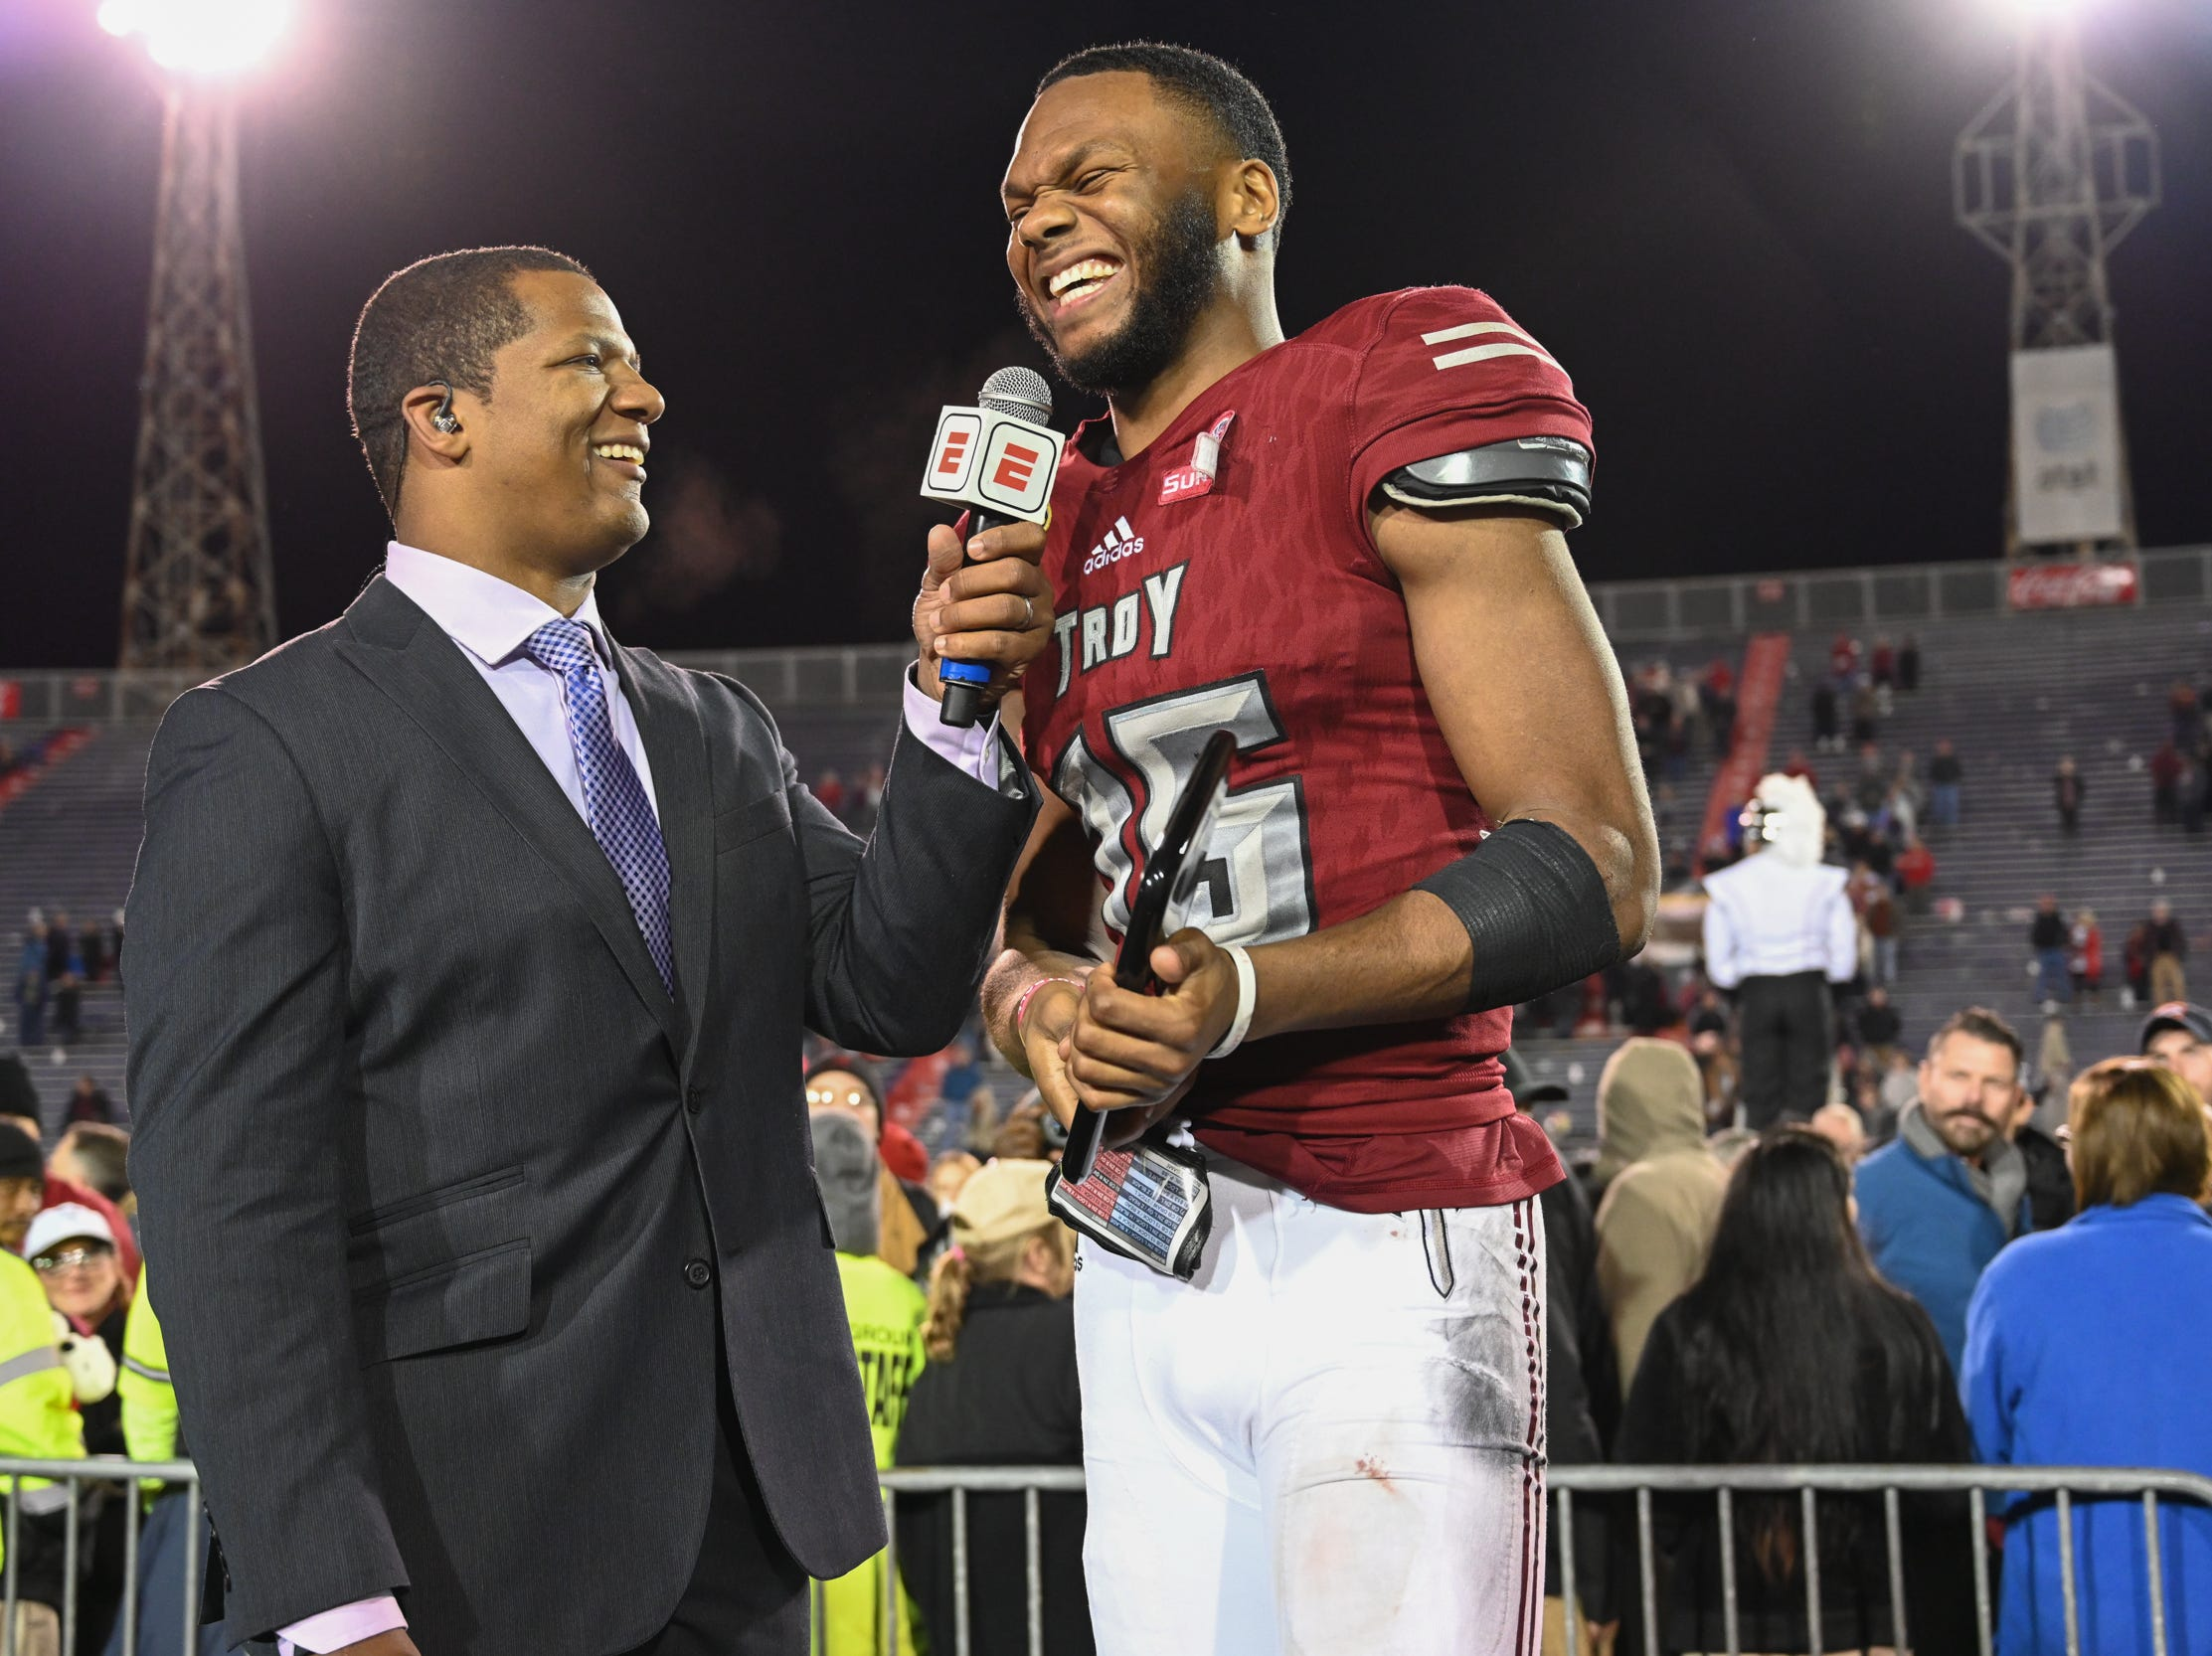 Troy Trojans wide receiver Damion Willis (15) is named most valuable offensive player of the Dollar General Bowl held at Ladd-Peebles Stadium in Mobile on Saturday, Dec. 22, 2018.